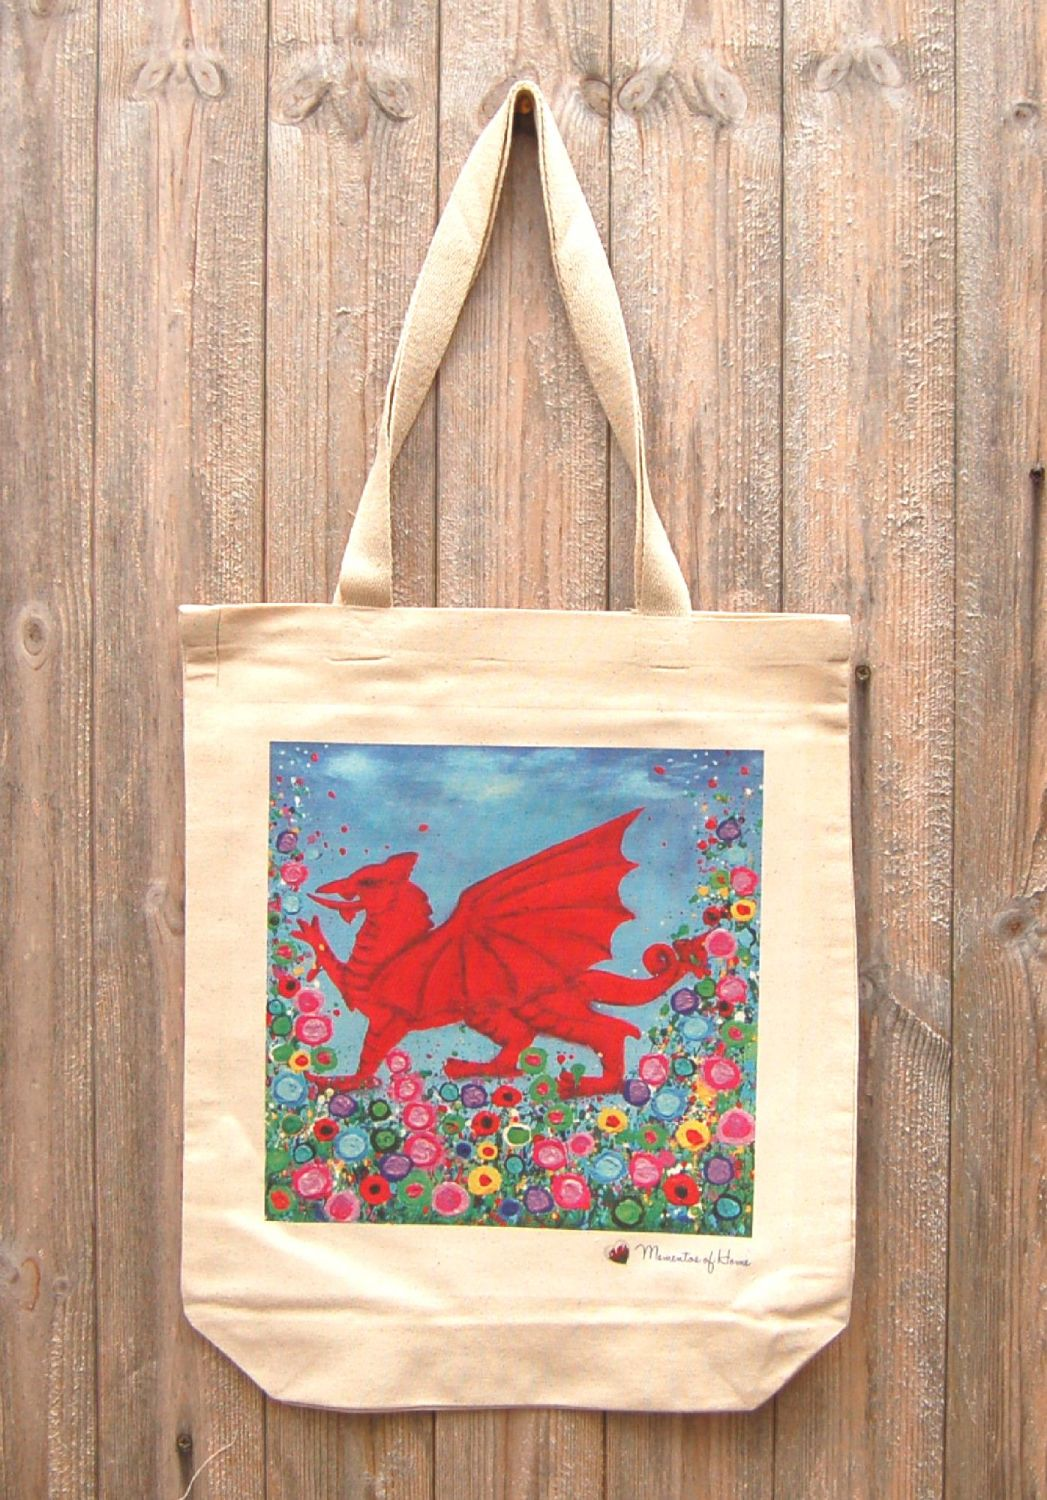 Jo Gough - Welsh Dragon with flowers Tote Bag